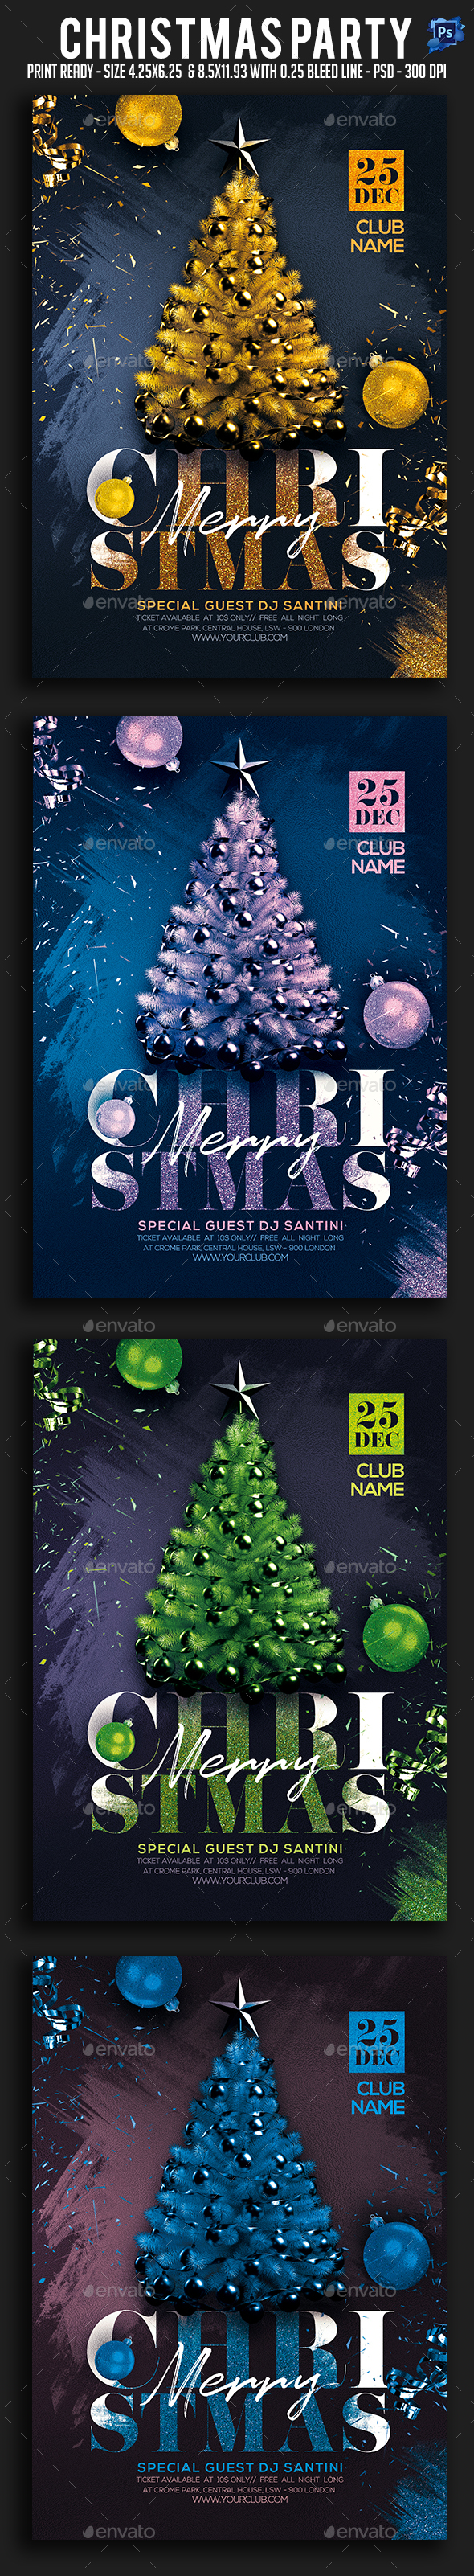 Christmas Party Flyer - Clubs & Parties Events